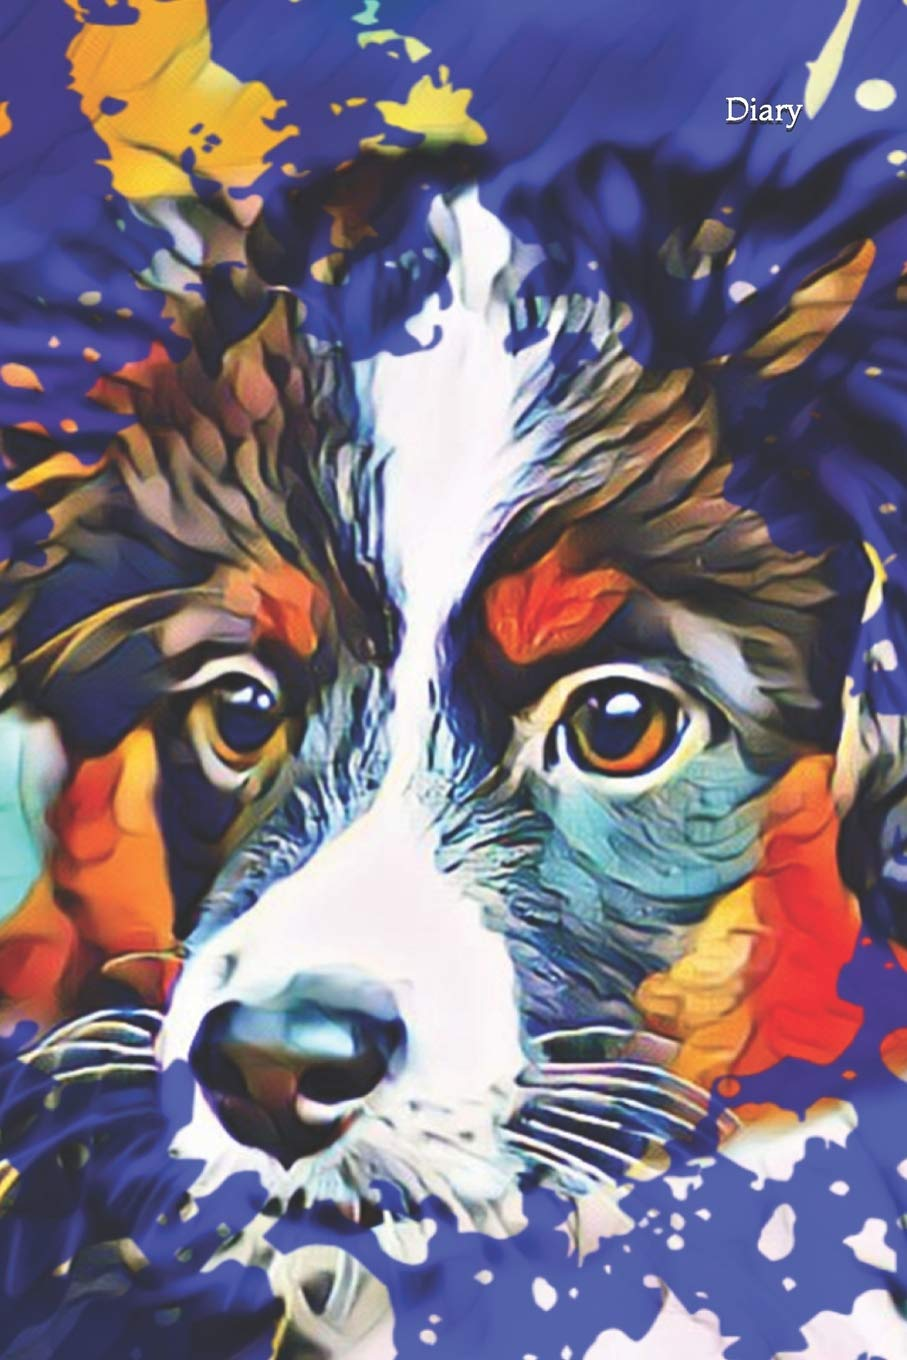 Diary: Notebook Woman Girl Dog Lovers Obedience Agility Notes Dog Sports Sheepdog Dog Breed Dog Training Mini Aussie American Shepherd